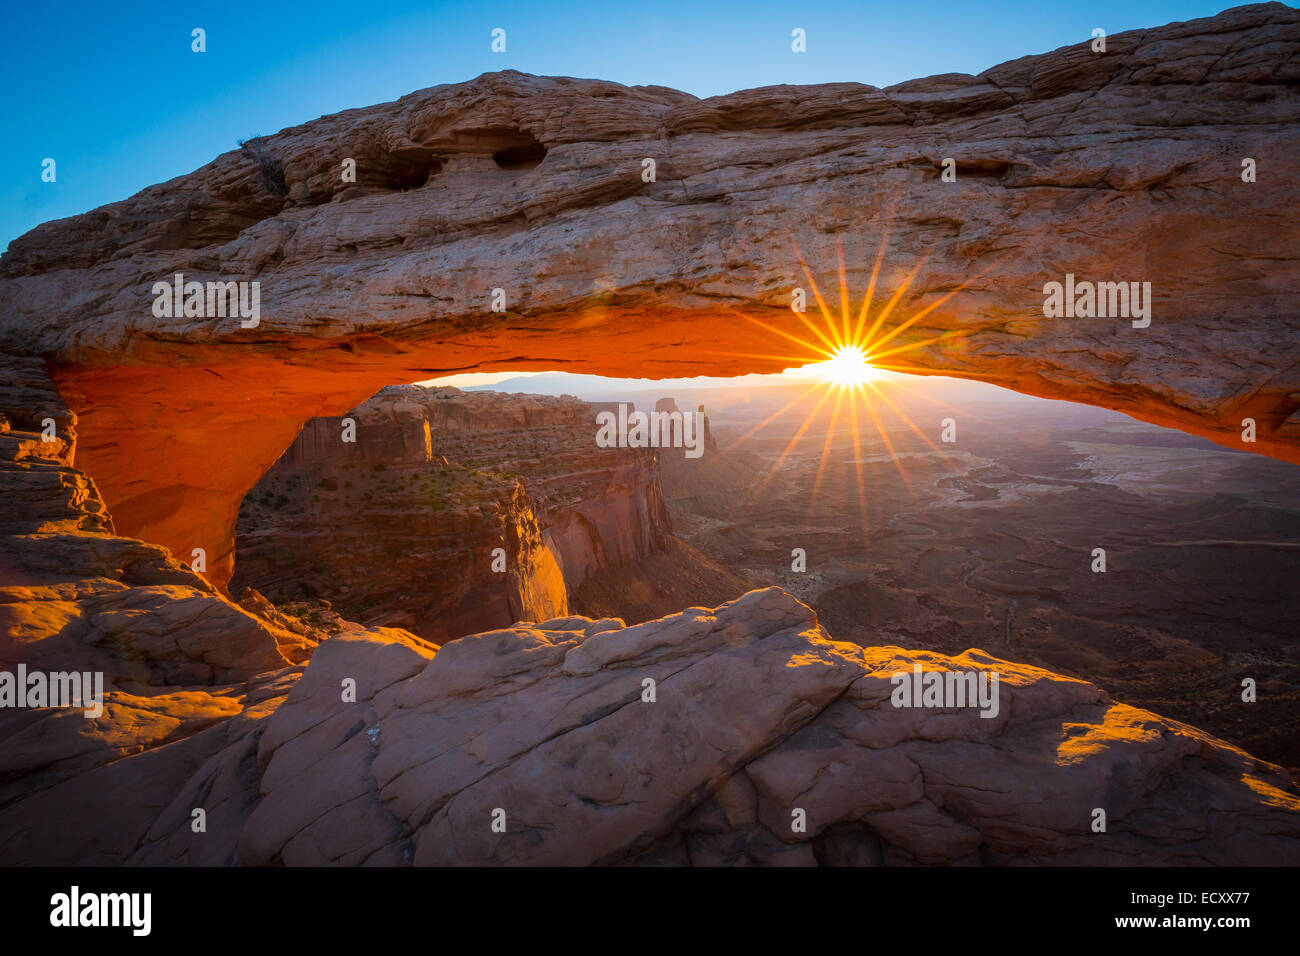 Mesa Arch at sunrise, Island in the Sky district of Canyonlands National Park, Utah - Stock Image